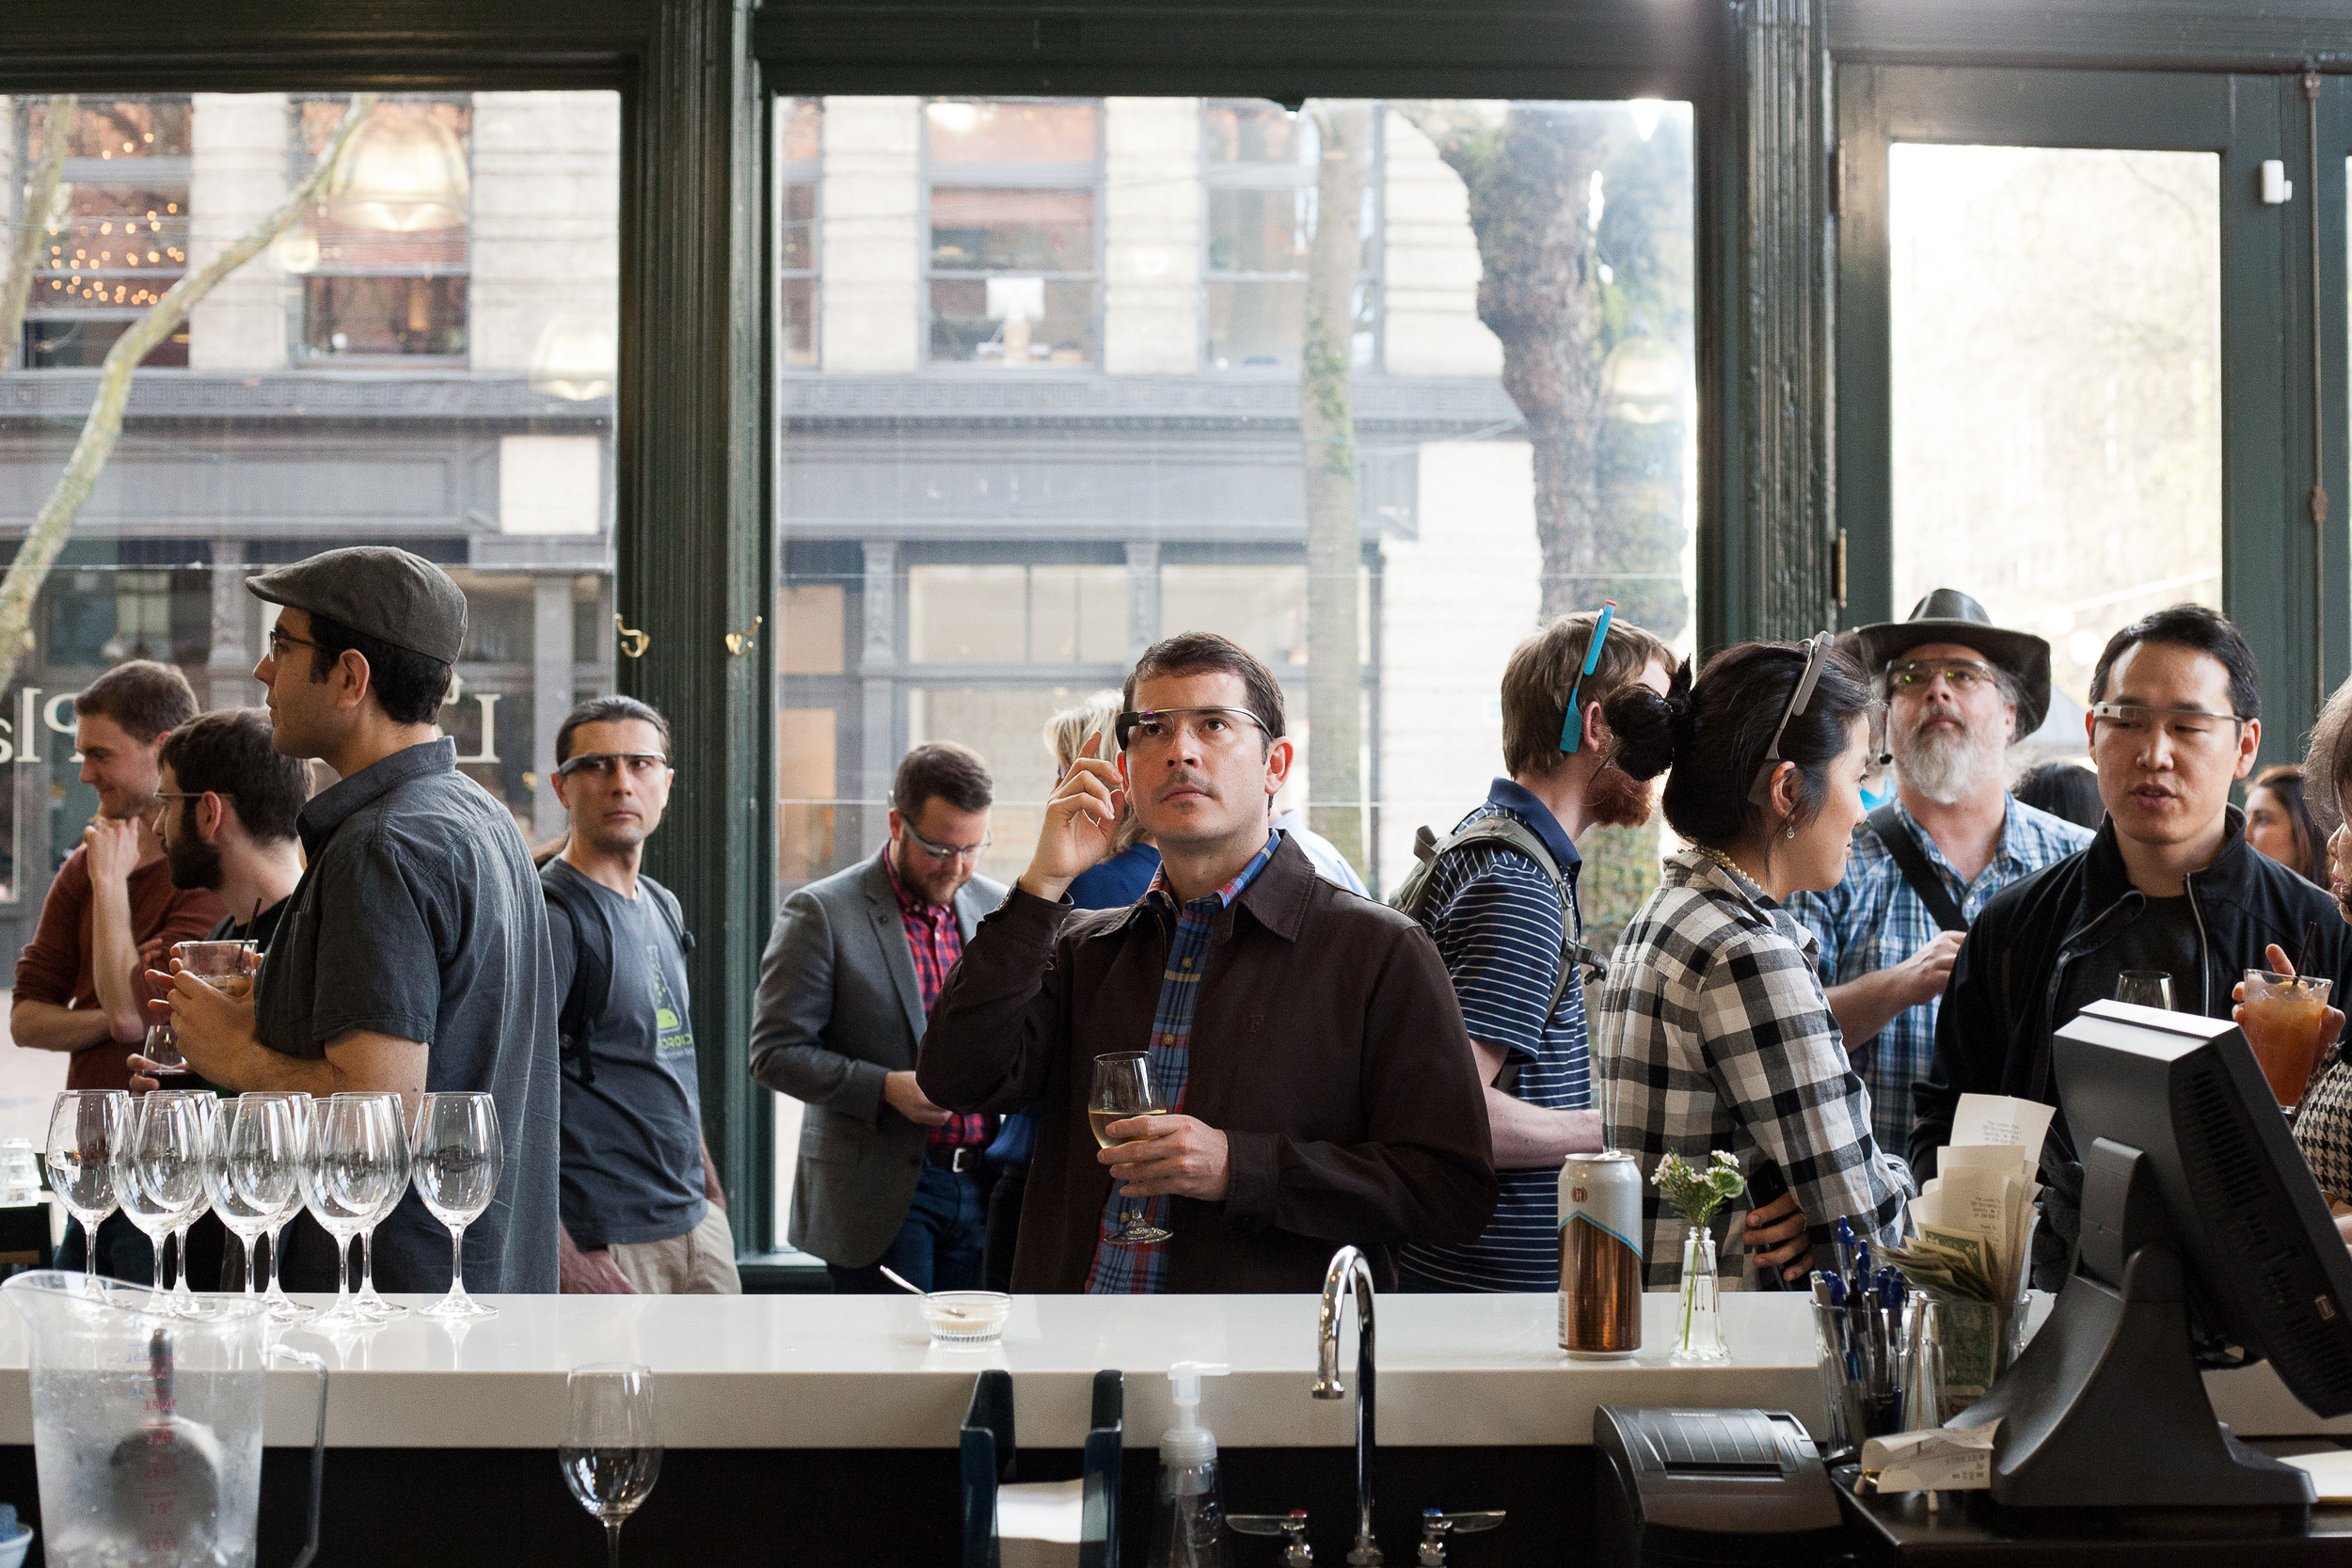 In April 2014, Glass demos and Explorer events were hosted at Seattle's Sodo Park and London Plane.